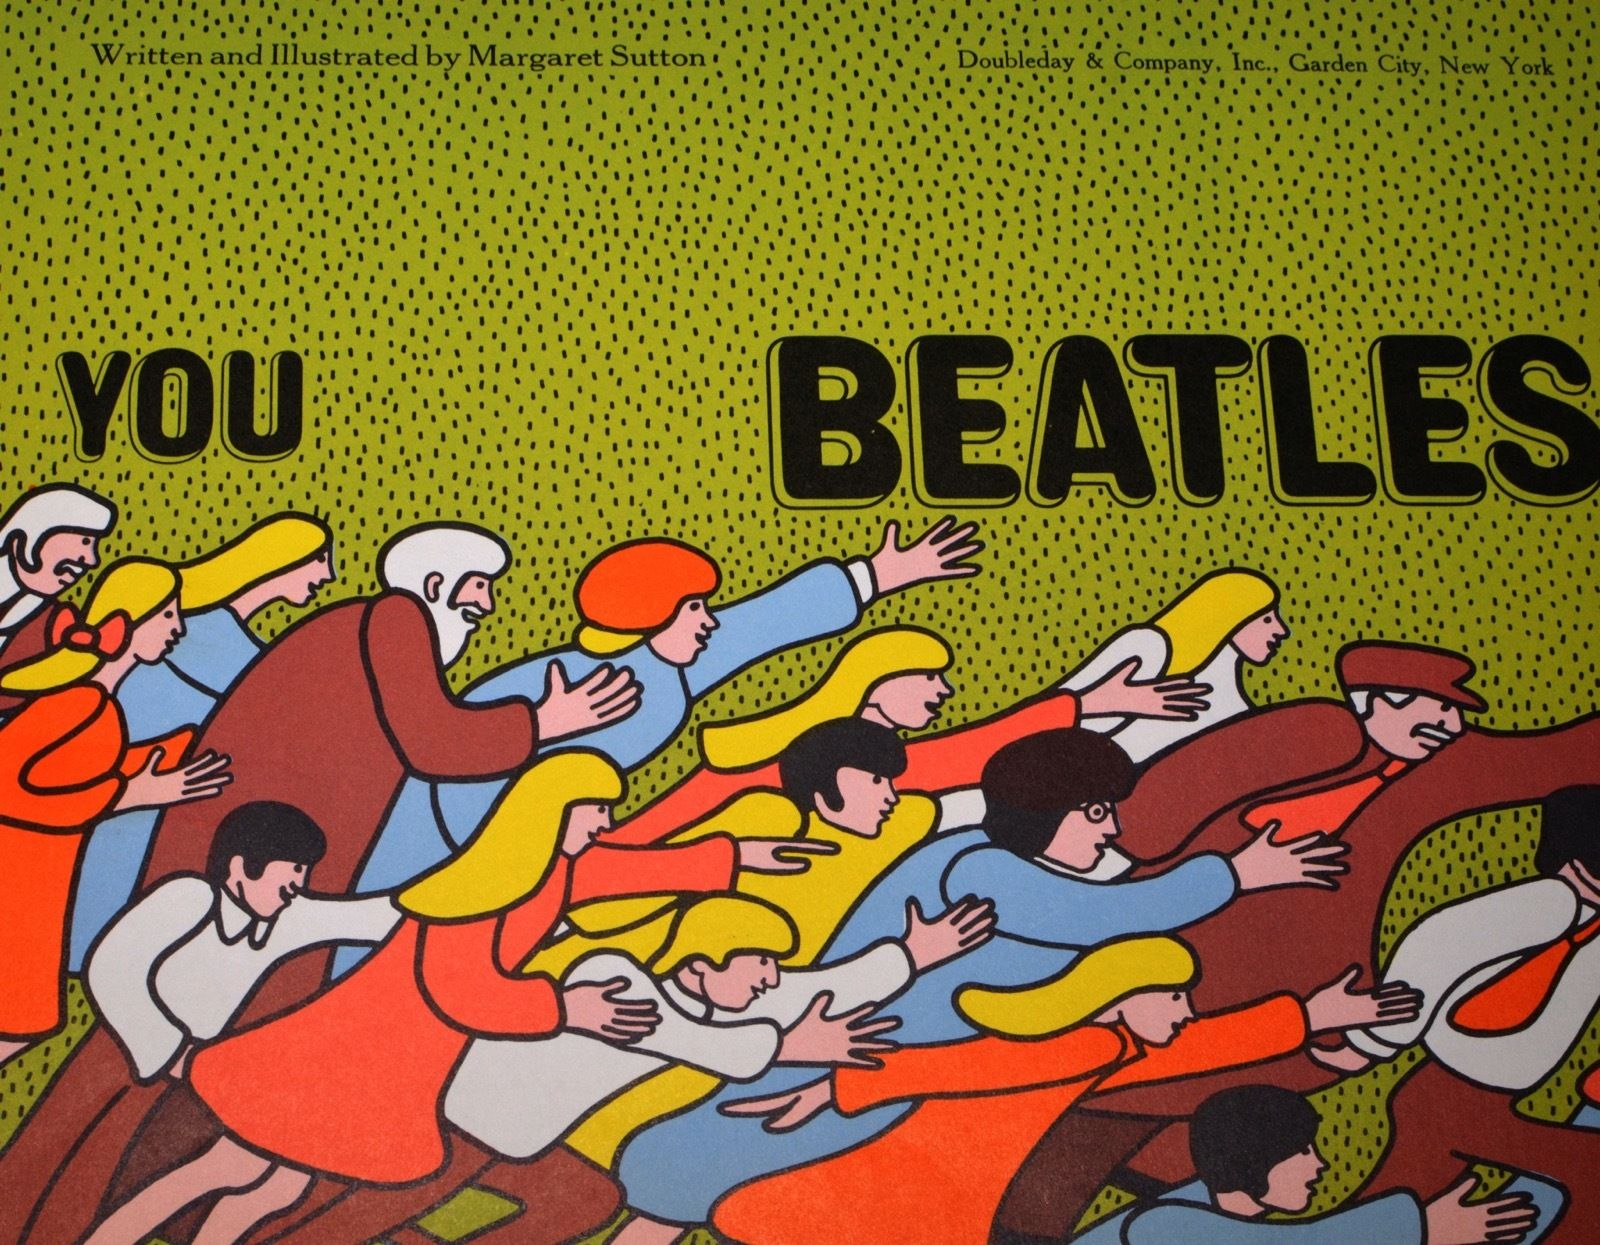 We Love You, Beatles